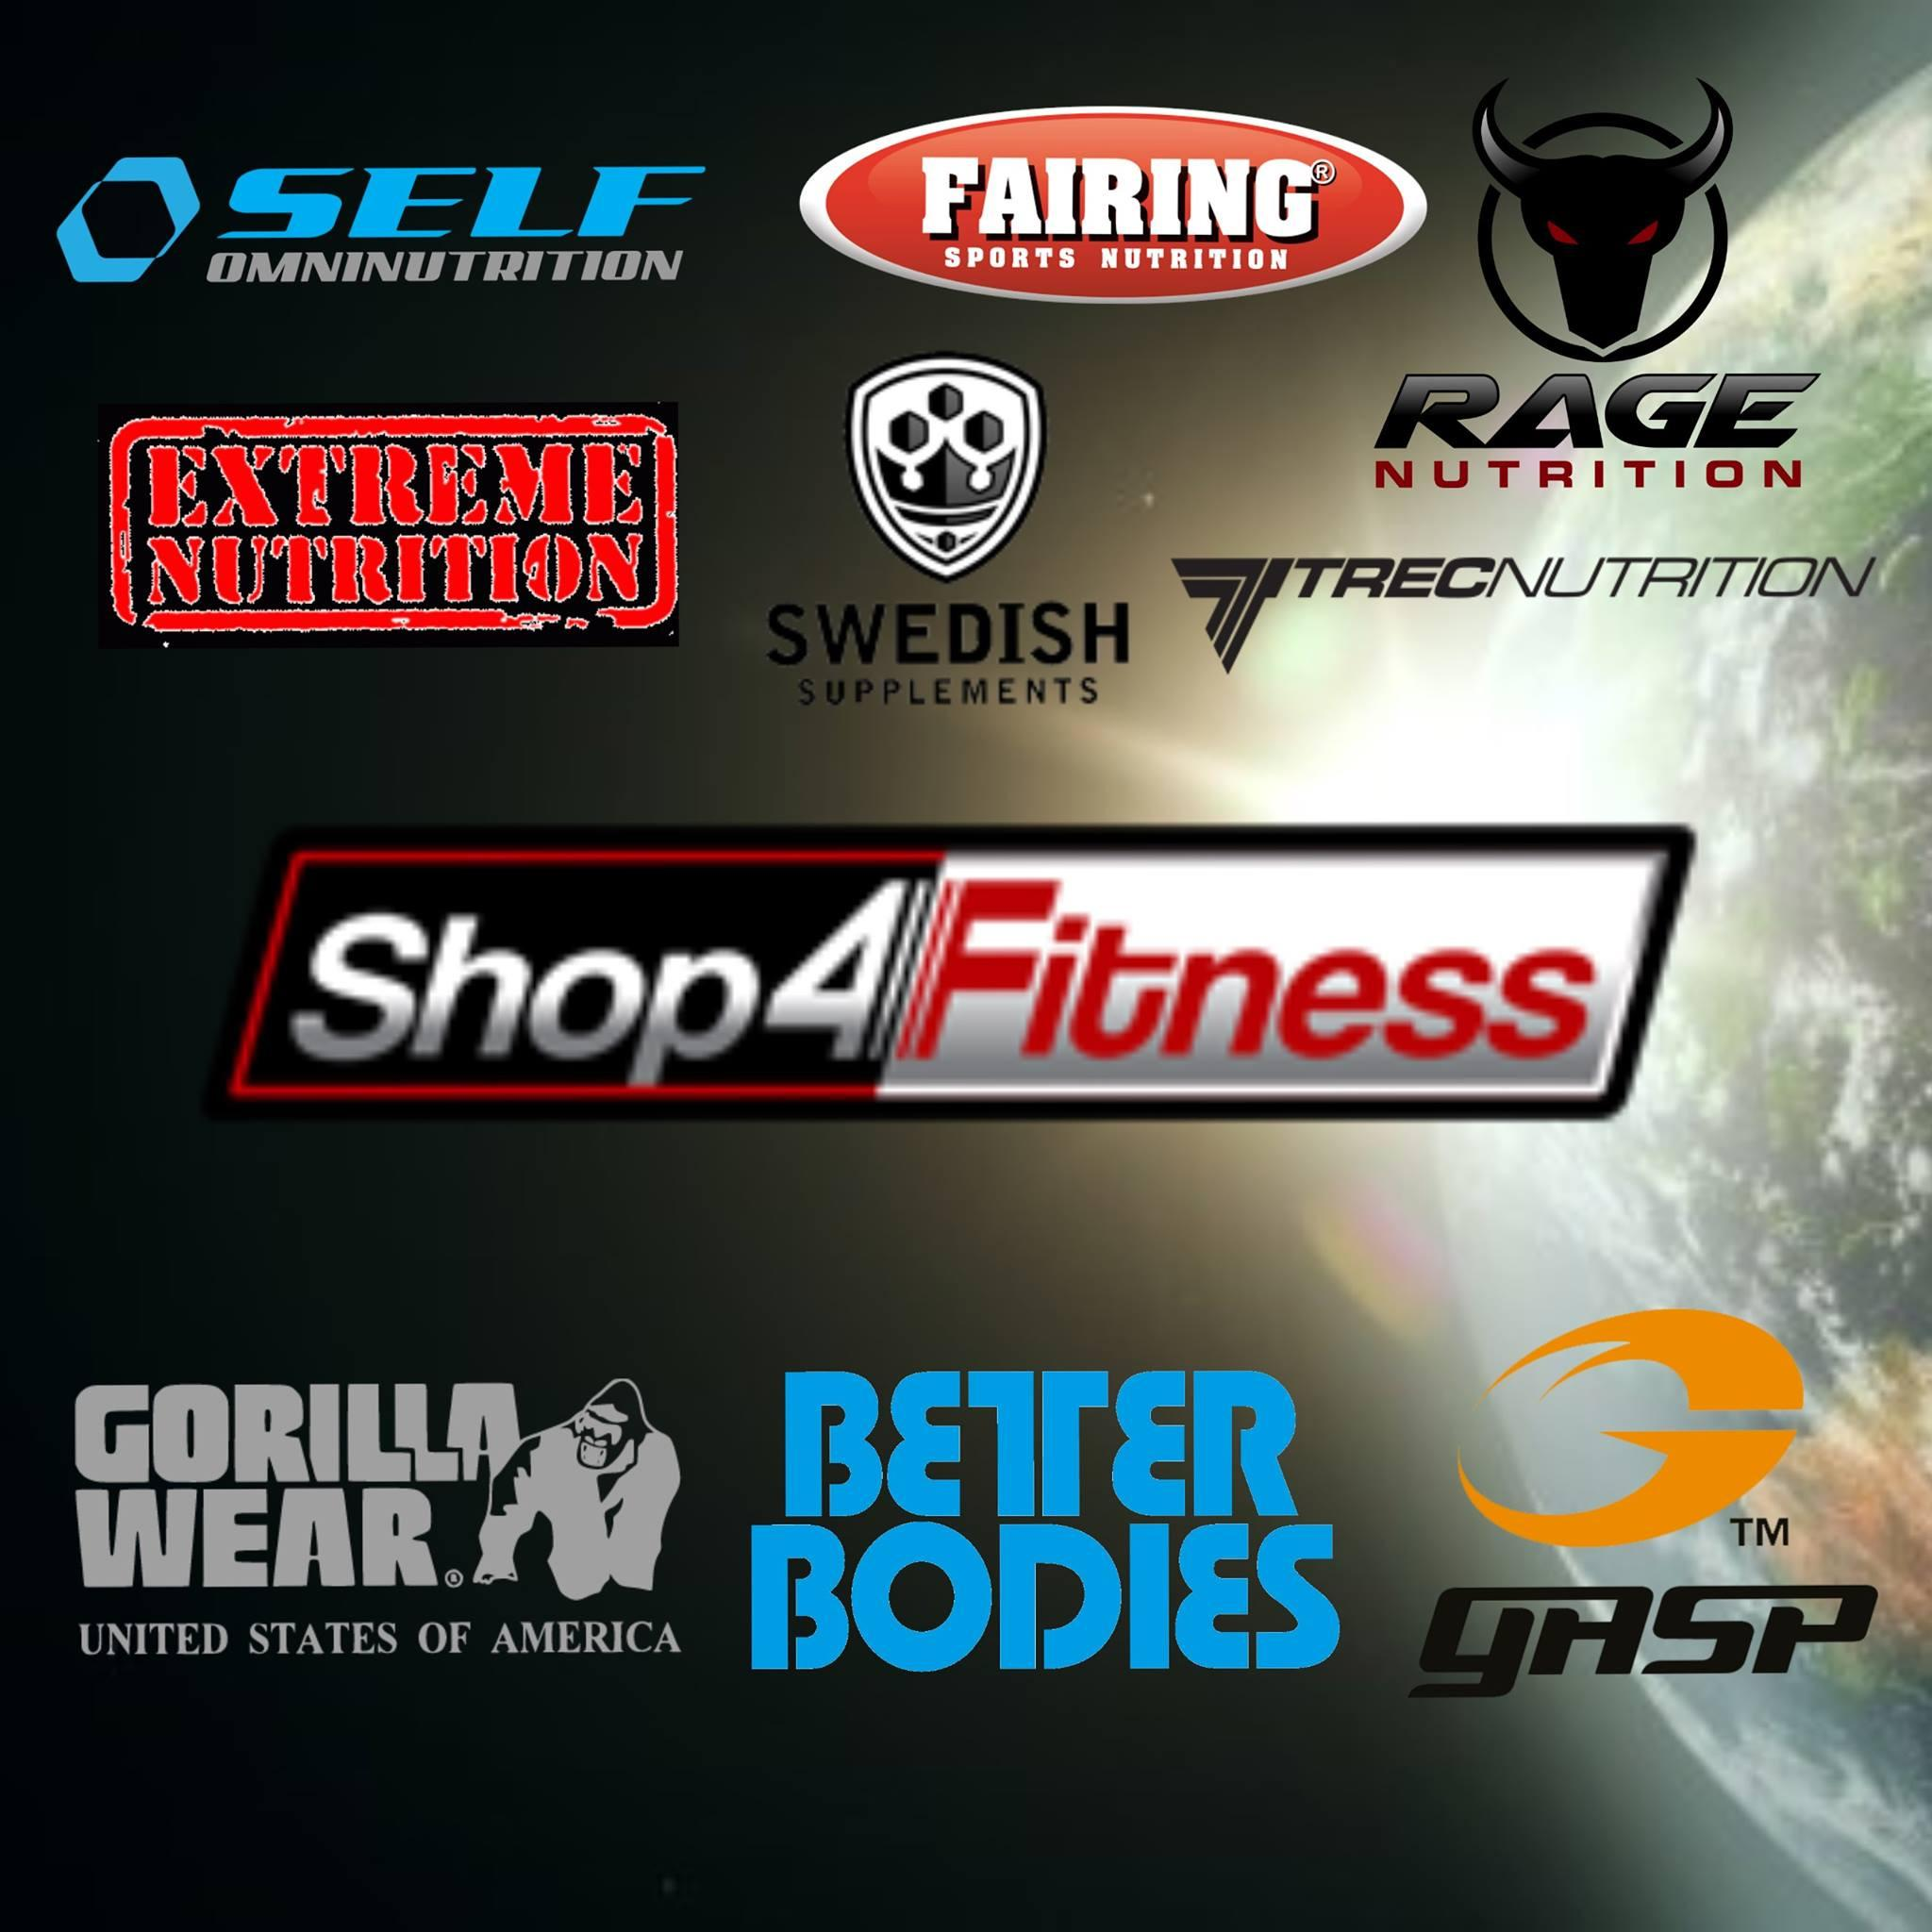 Shop4fitness AS